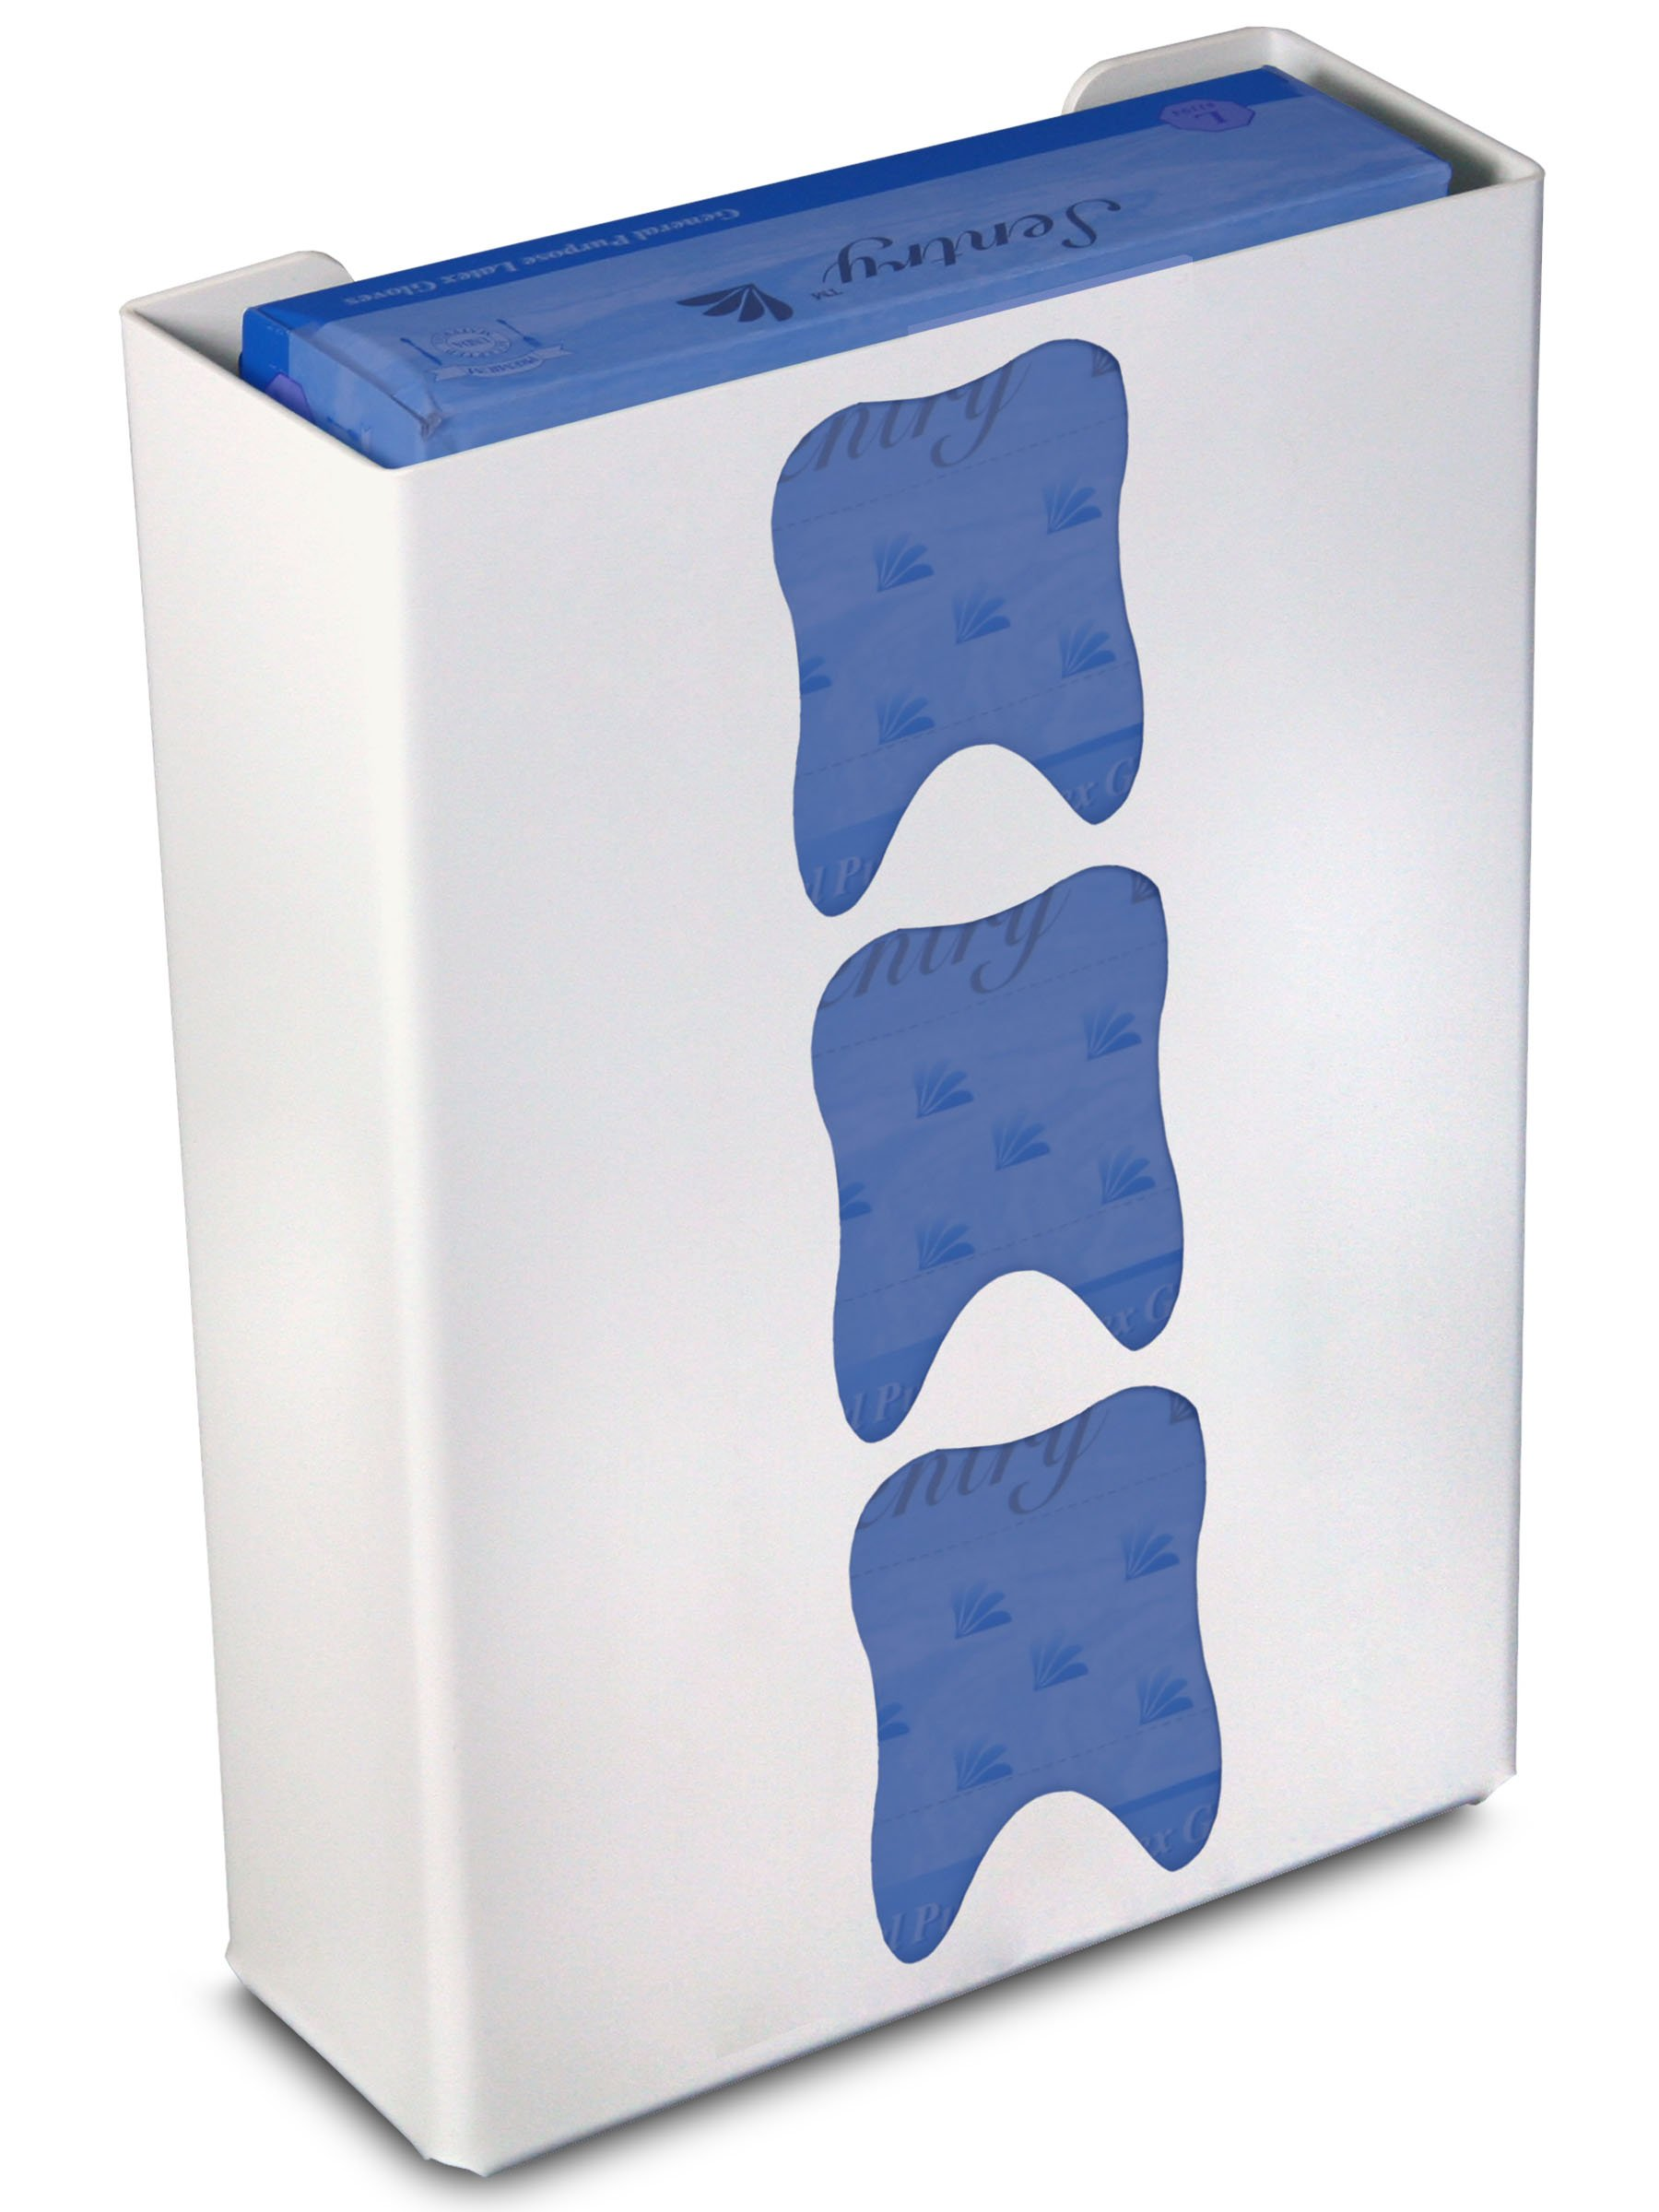 TrippNT 51055 Priced Right Triple Glove Box Holder with Tooth, 11'' Width x 15'' Height x 4'' Depth by TrippNT (Image #1)